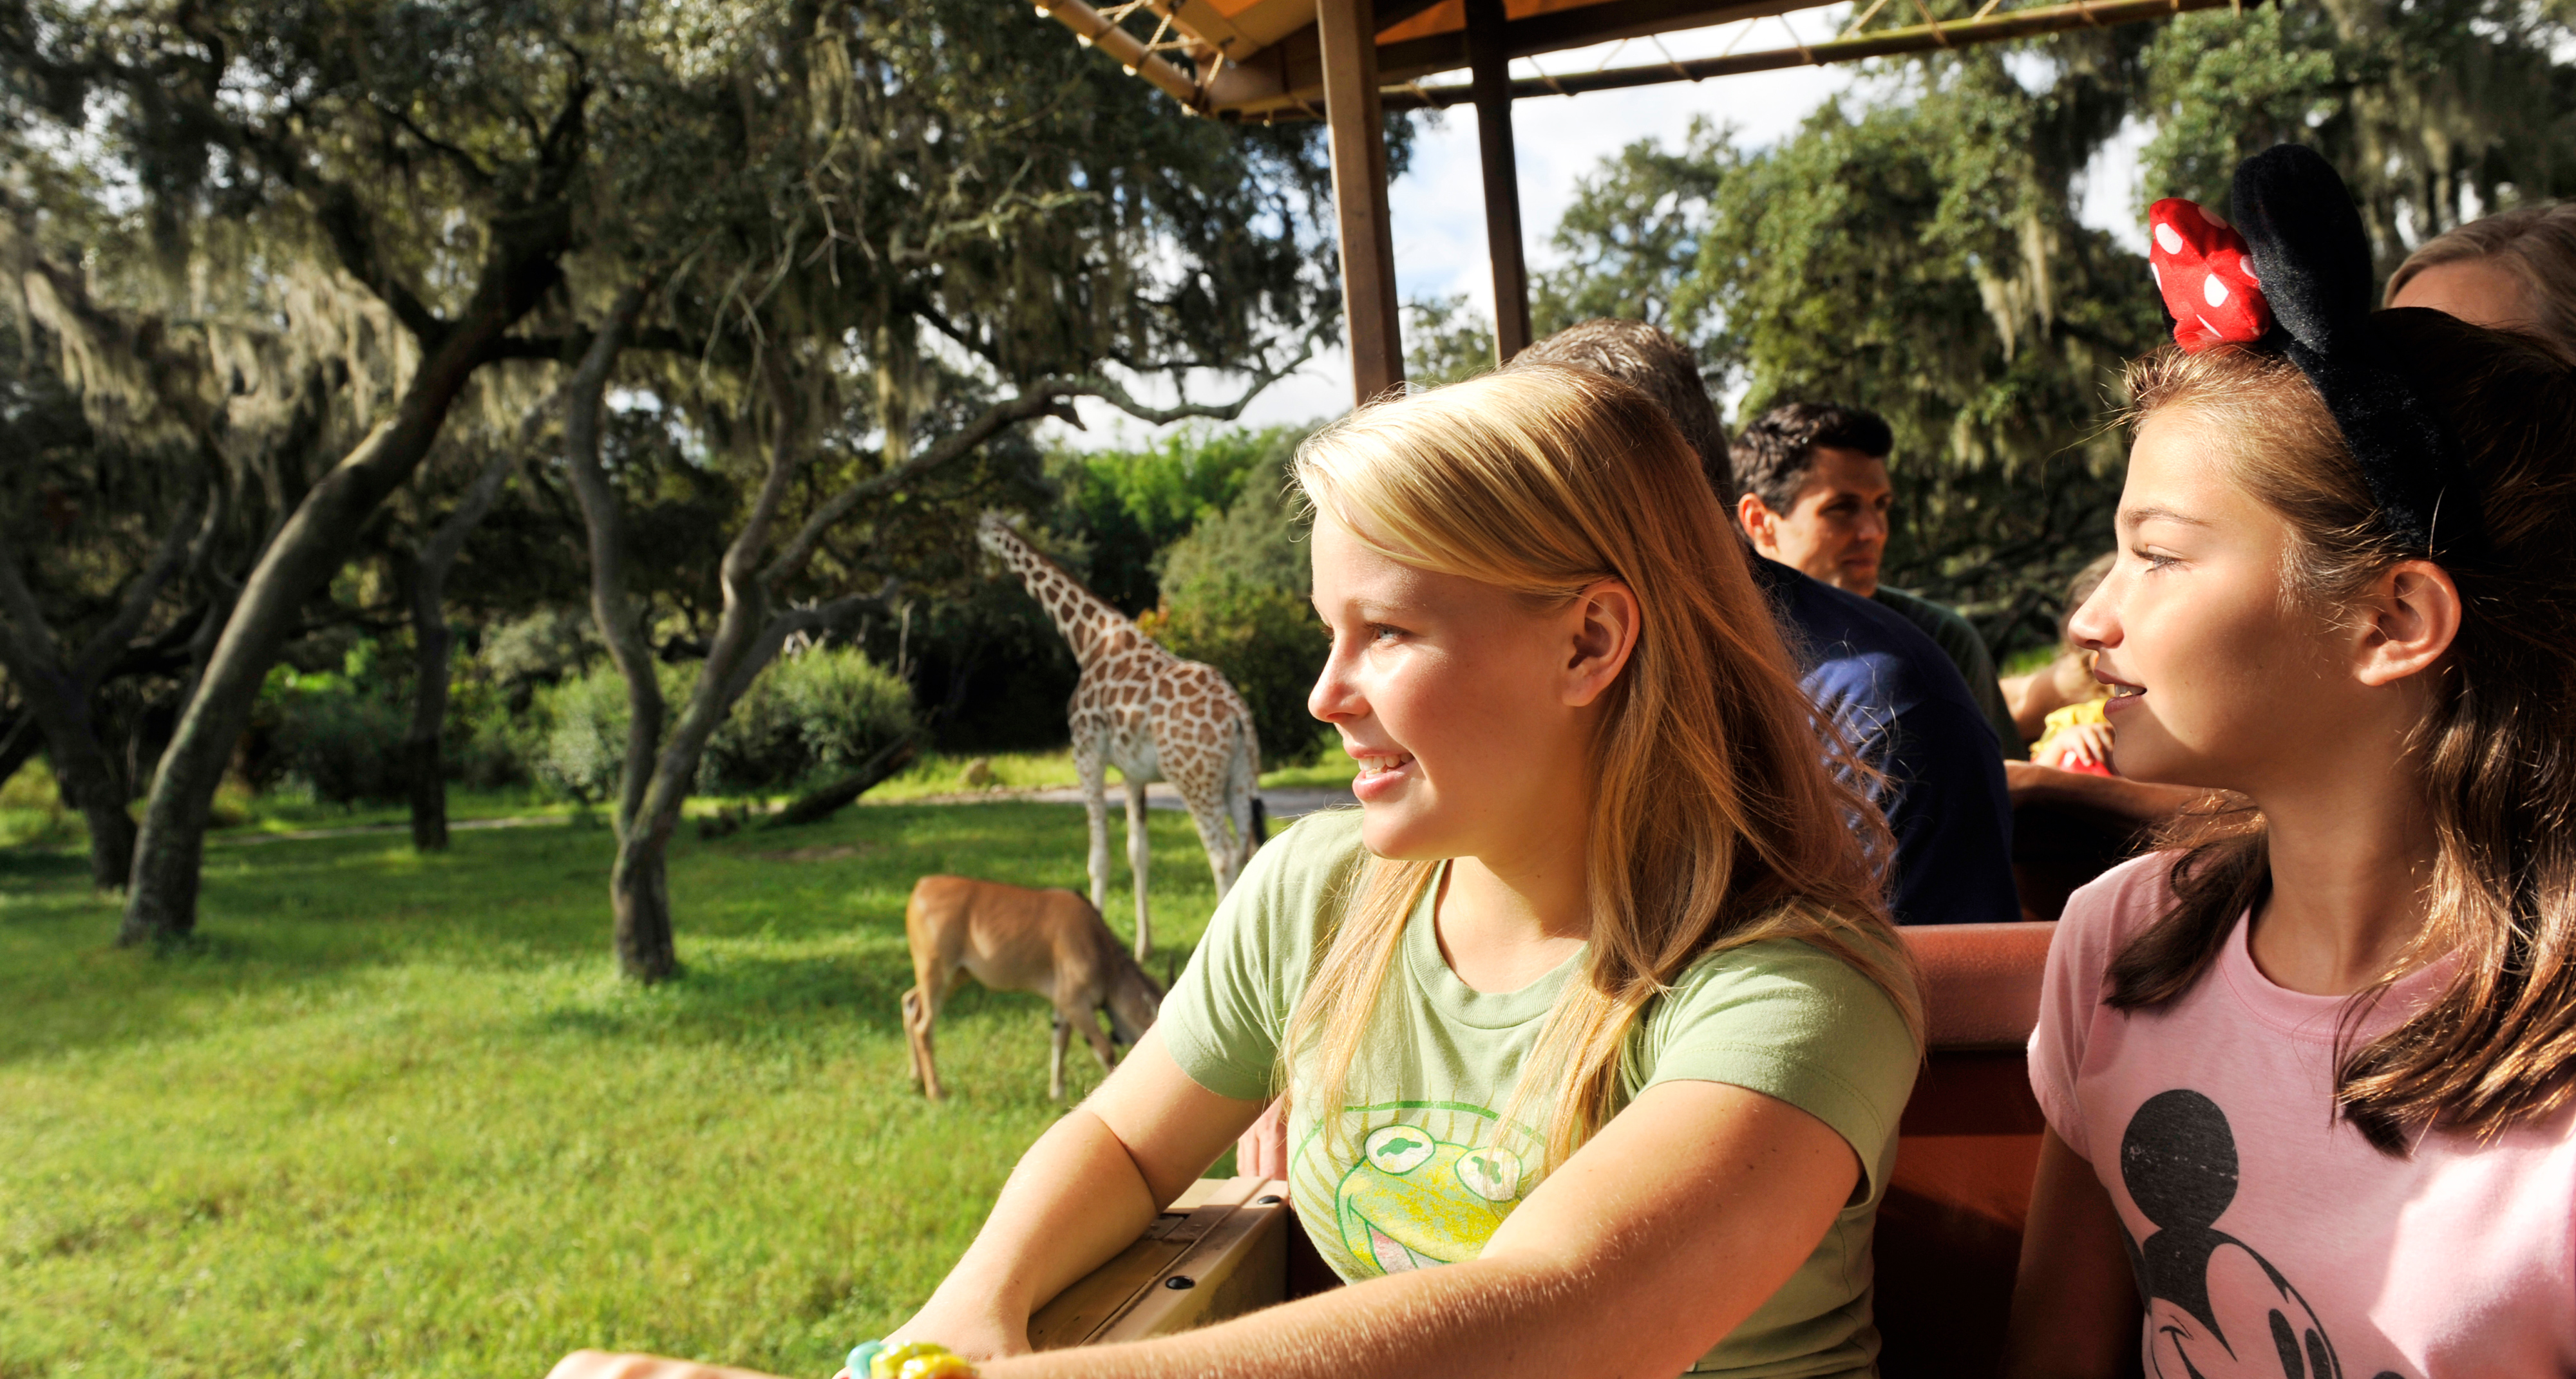 Young Guests watch in wonder while riding through the lush Savanna setting on Kilimanjaro Safaris